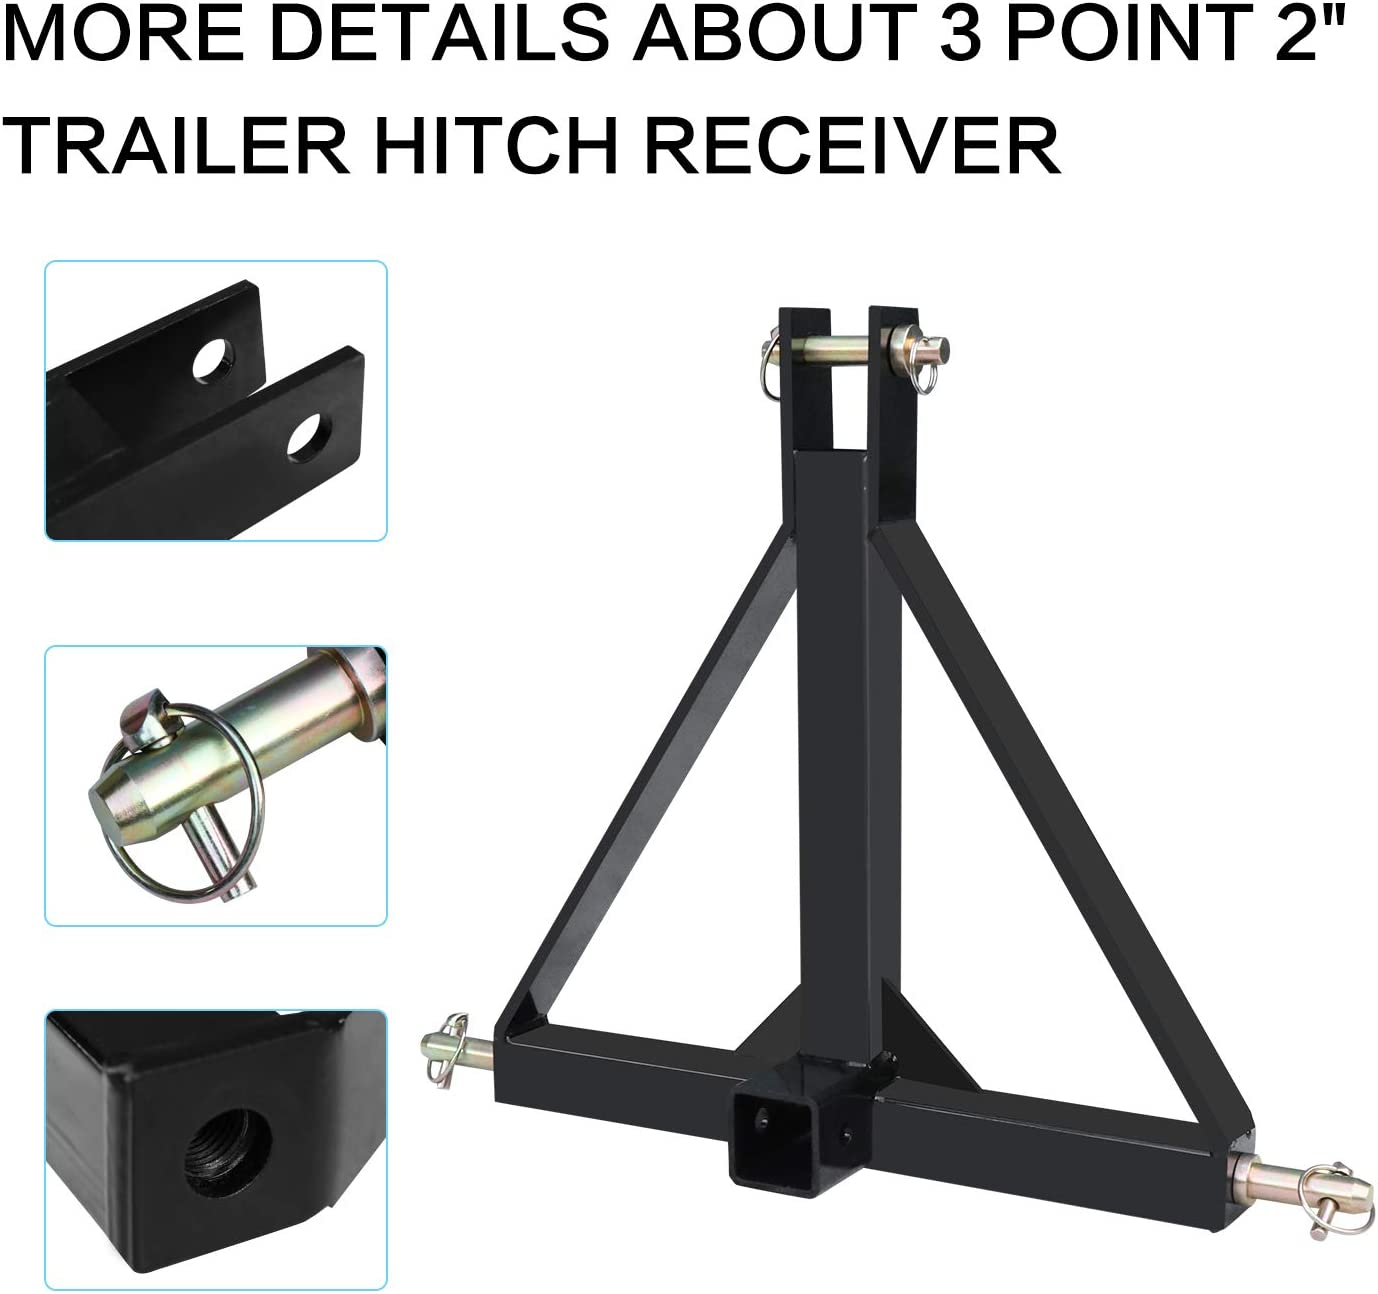 Cat 5000lbs Capacity WLM Tractor EBESTTECH 3 Point 2 Inch Receiver Trailer Hitch Heavy Duty Steel Category 1 Tractor Tow Hitch Drawbar Adapter for Kubota LM25H Kioti Yanmar NorTrac BX